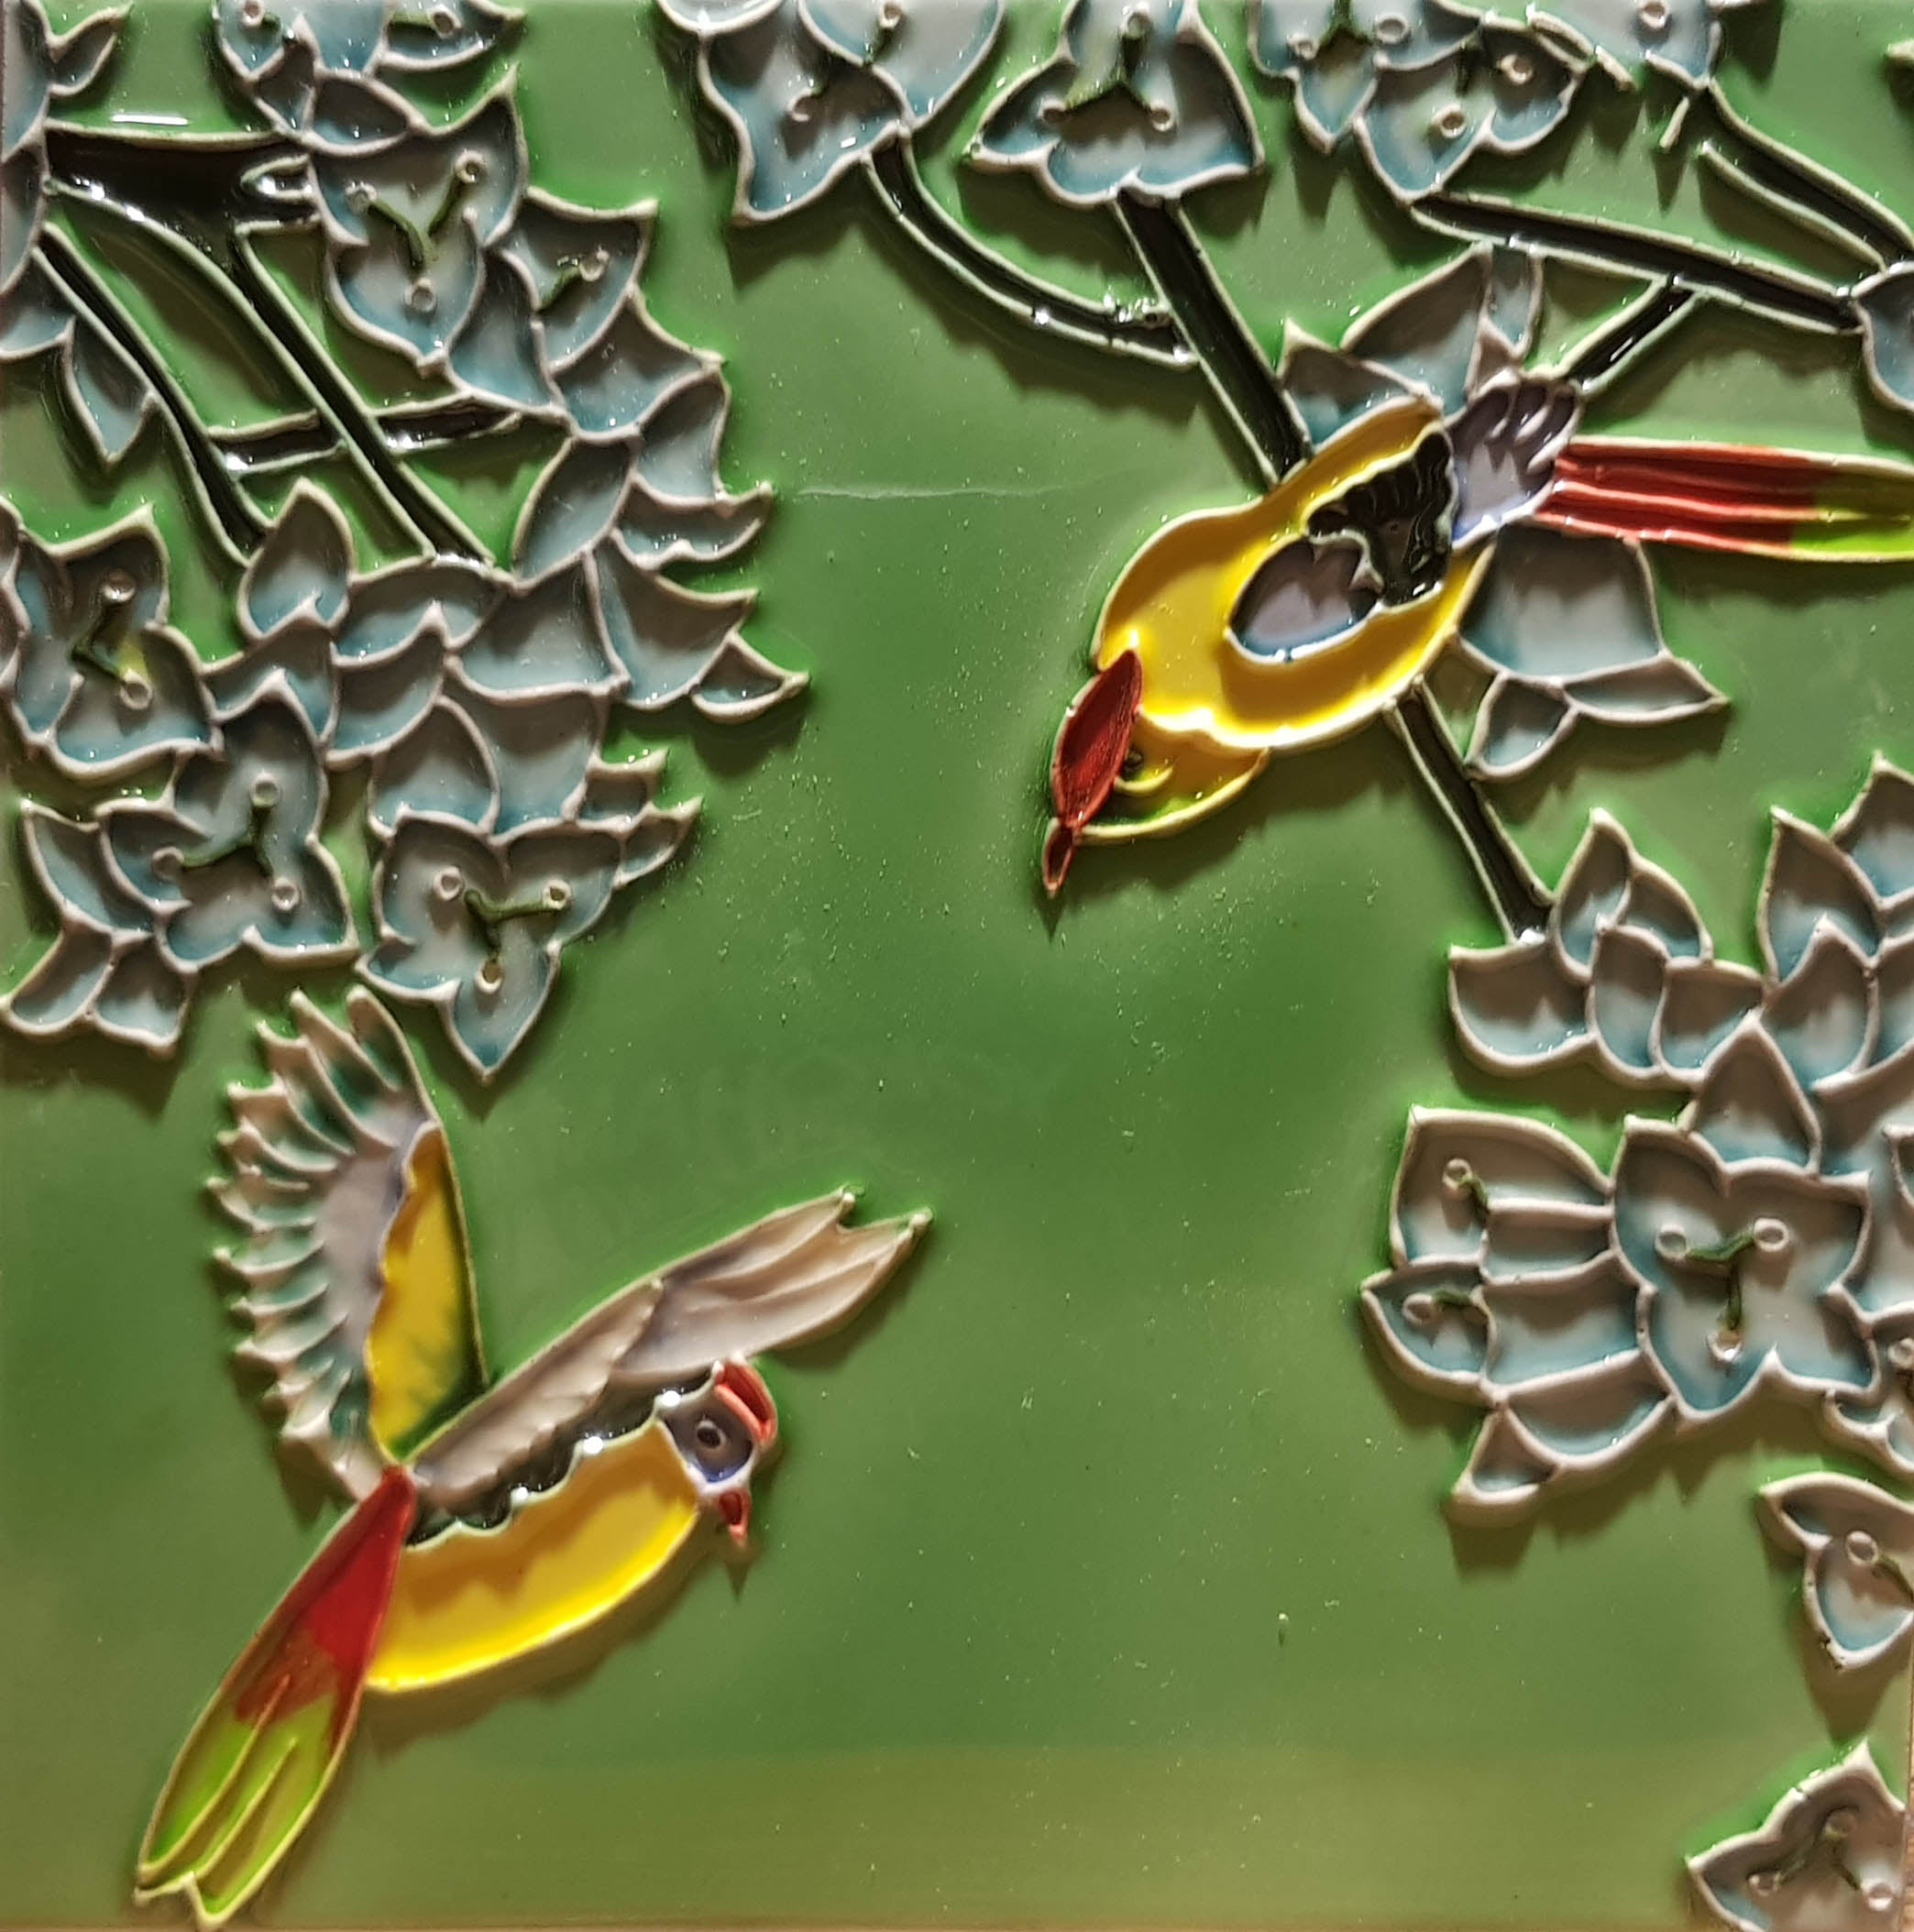 2186 Jade Leaf and Yellow Bird 20cm x 20cm Ceramic Tile